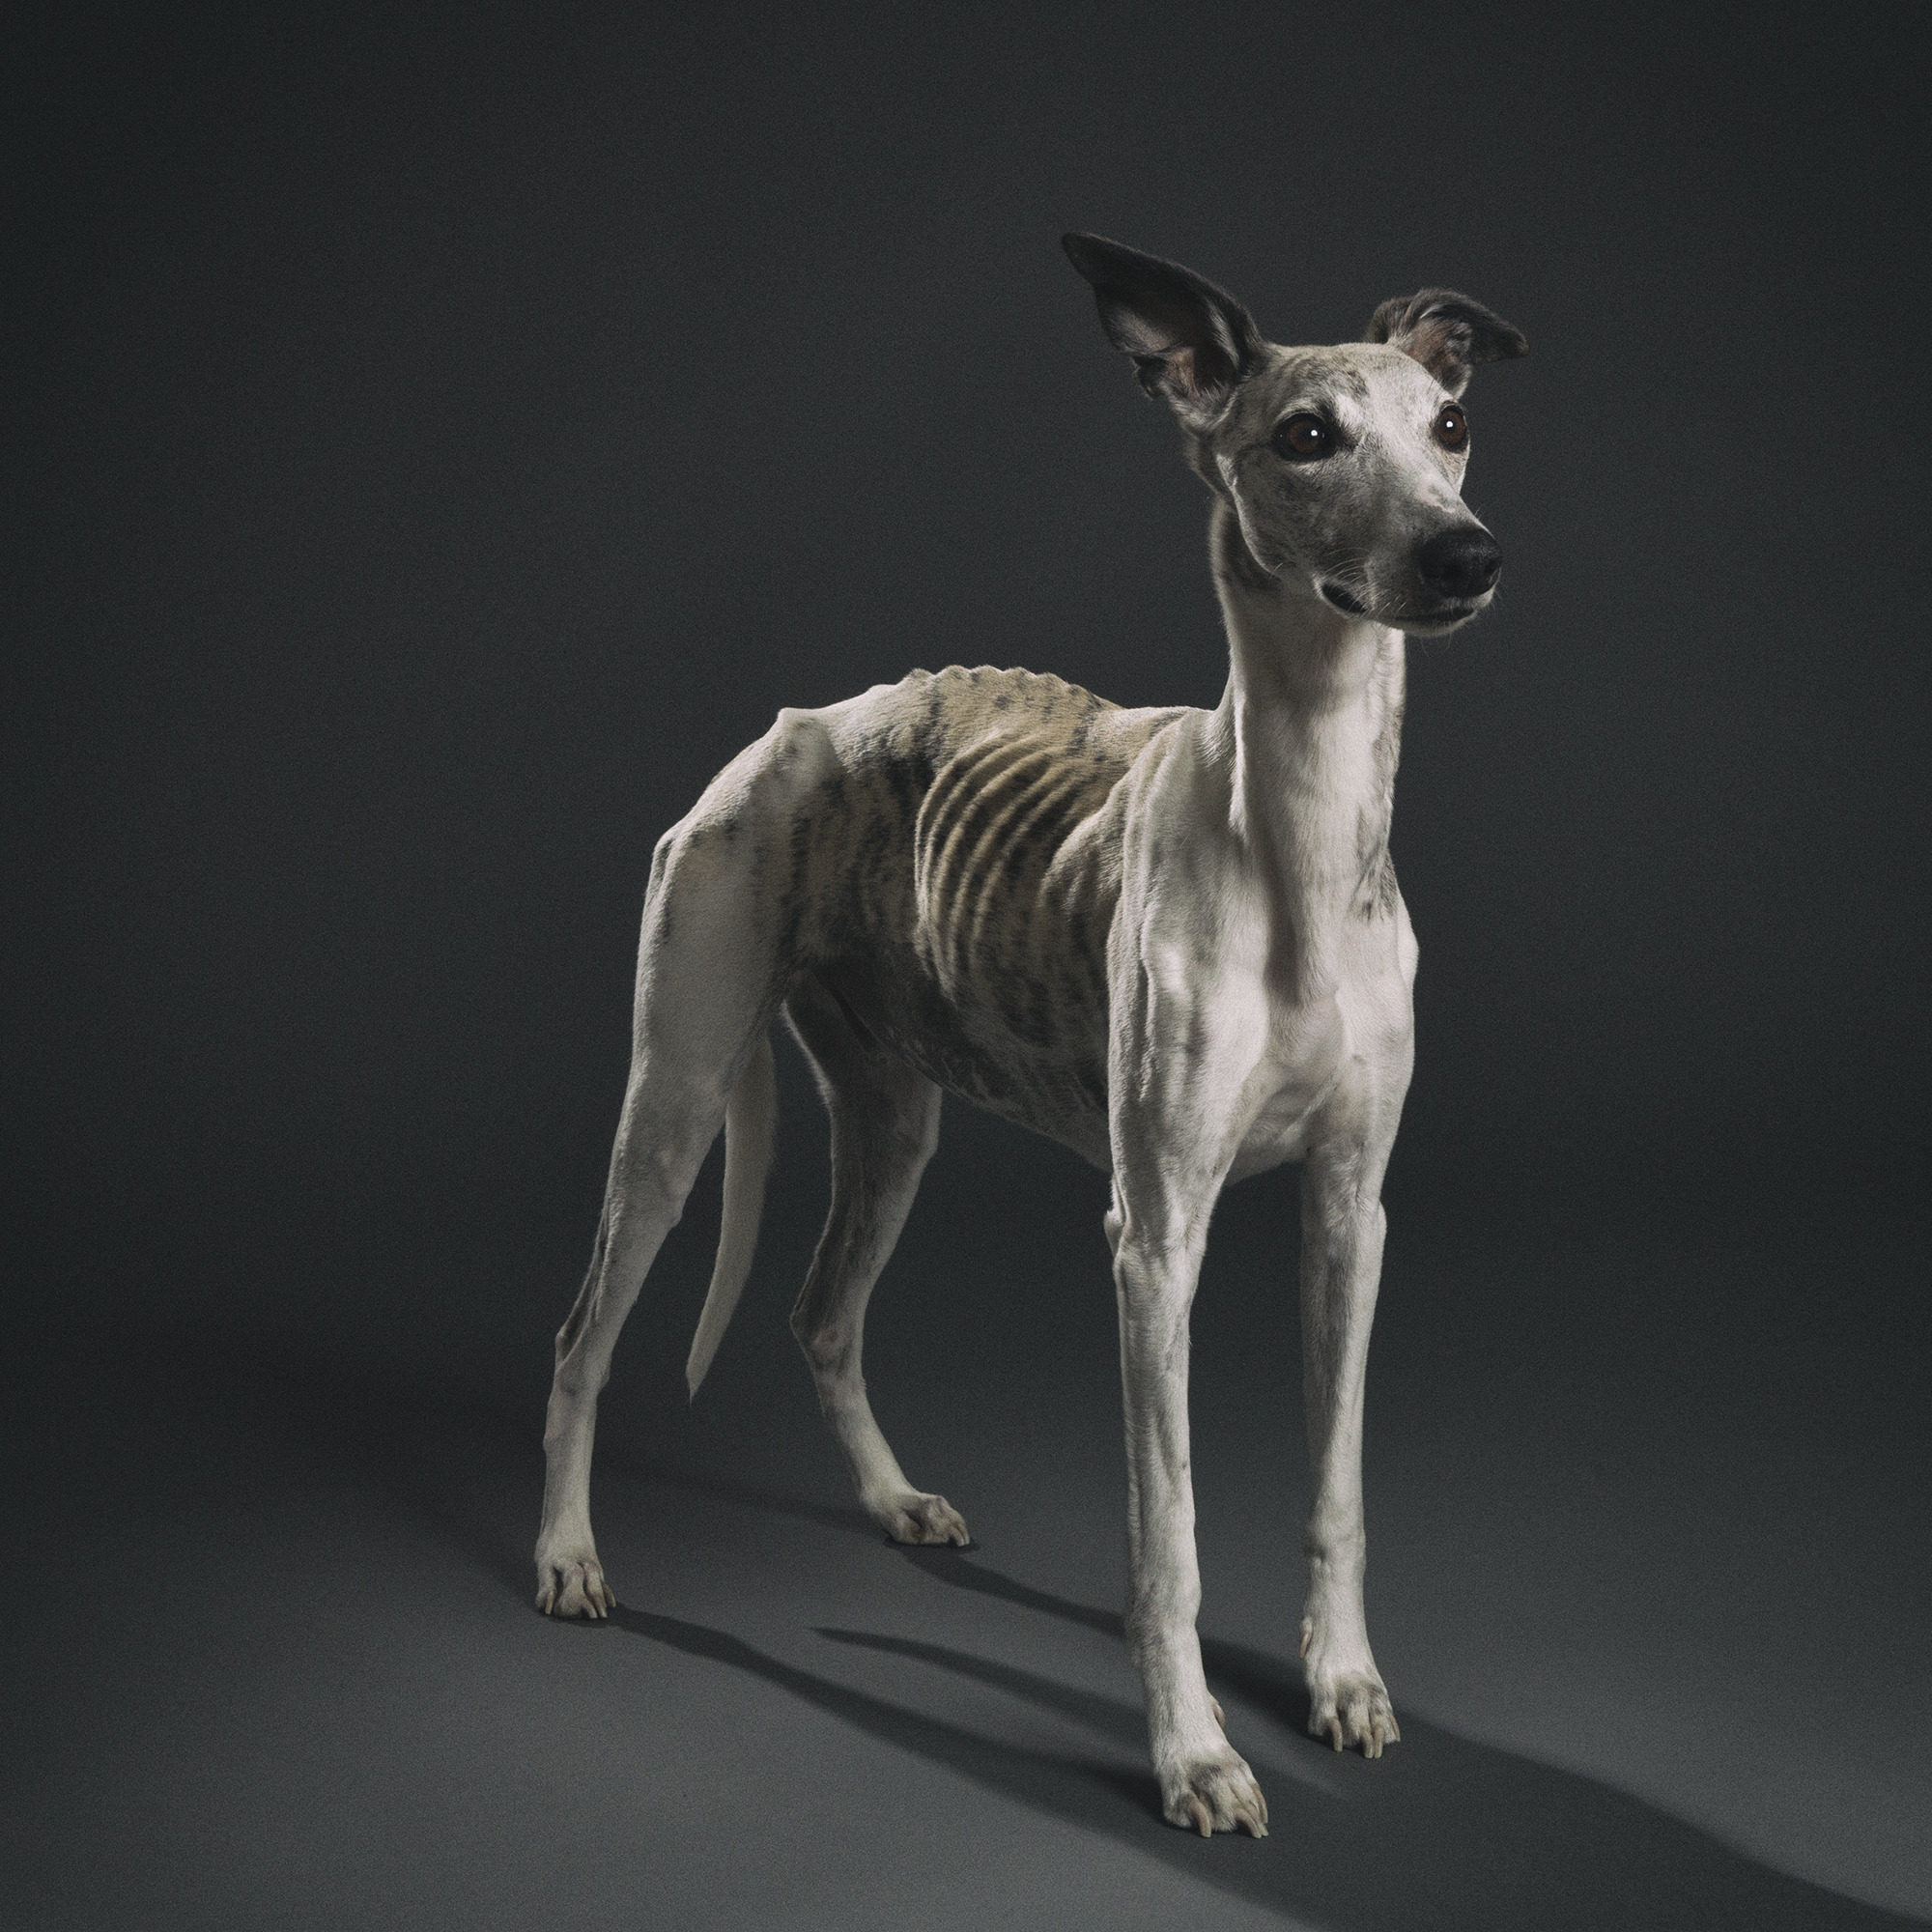 A Dying Whippet